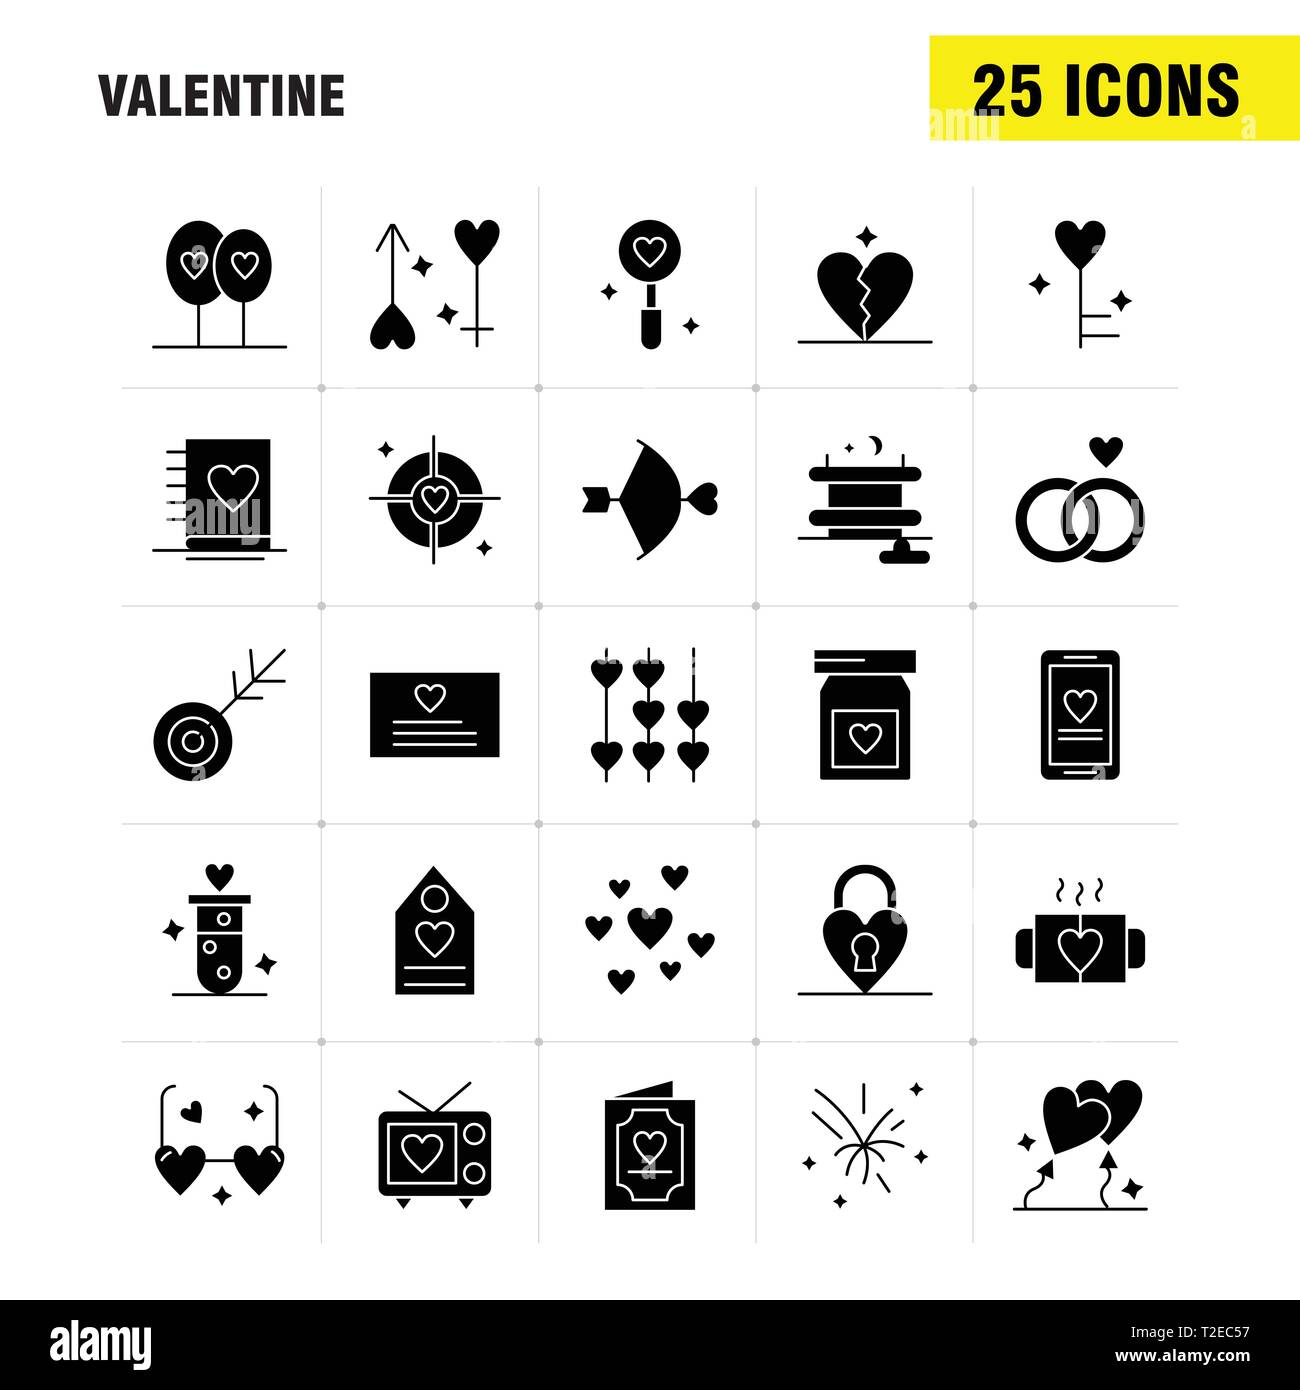 Valentine Solid Glyph Icons Set For Infographics, Mobile UX/UI Kit And Print Design. Include: Bottle, Medicine, Love, Valentine, Romantic, Book, Love, - Stock Image